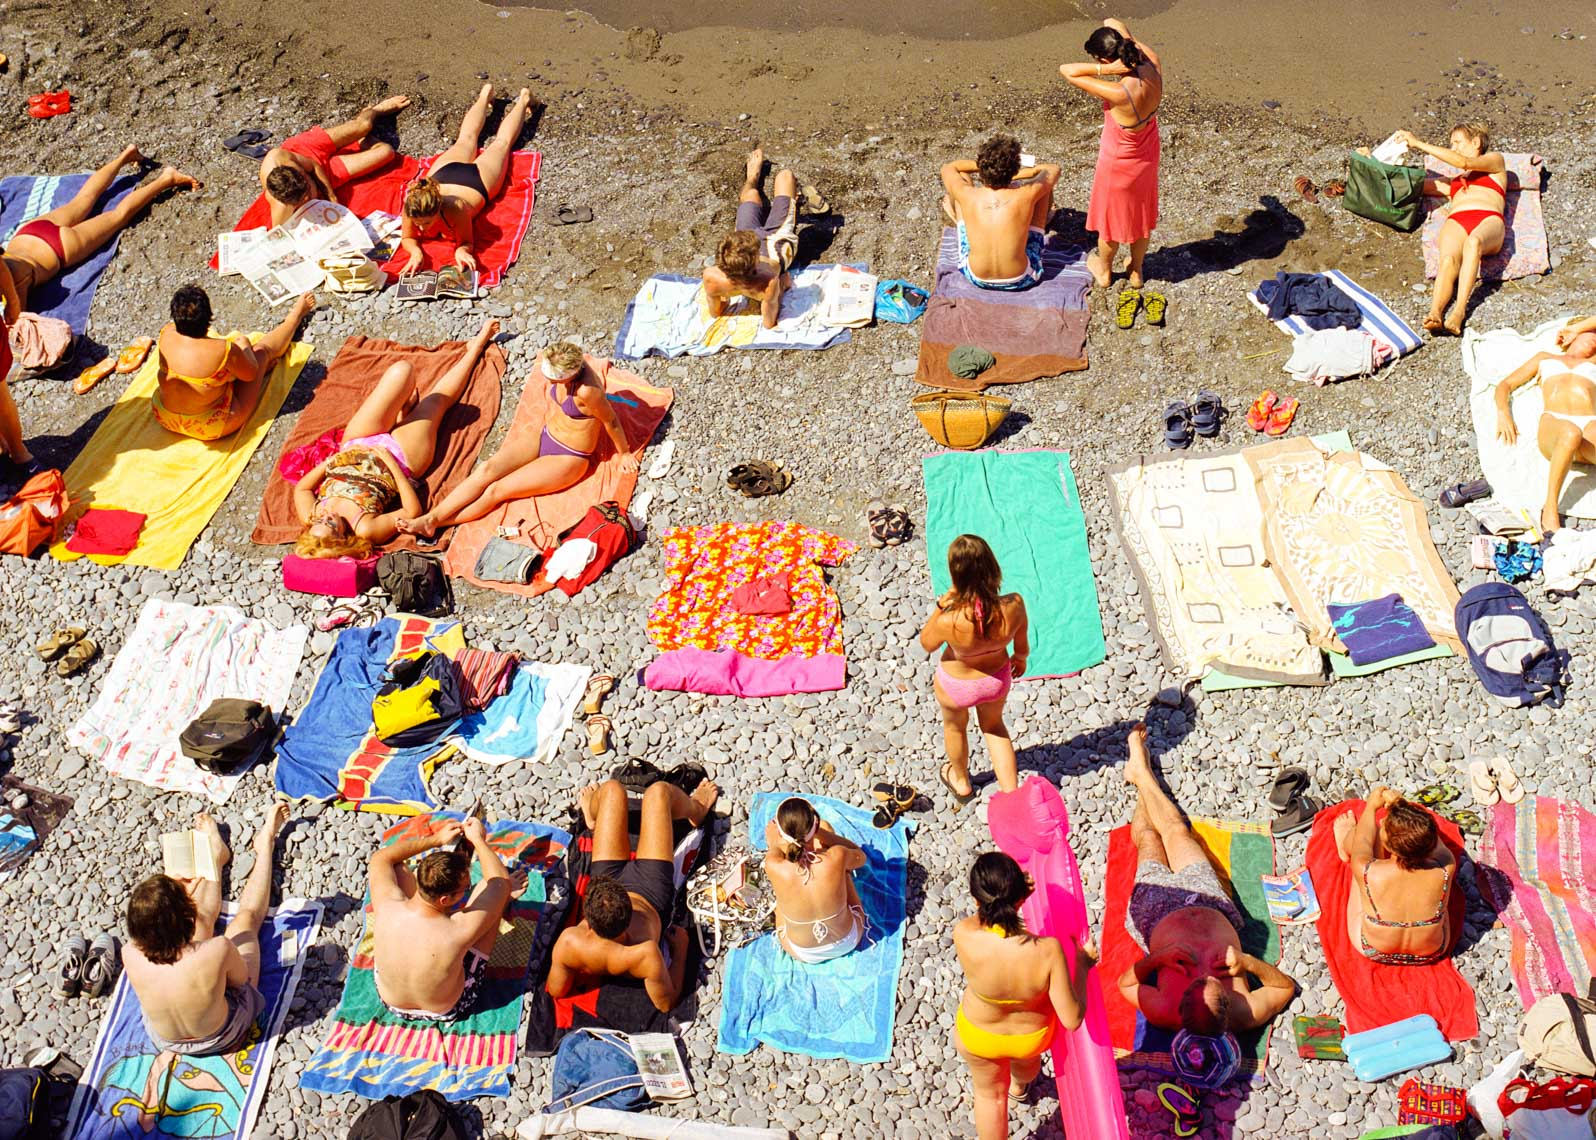 Image Of Italian Beach Lifestyle | Tosca Radigonda Photography